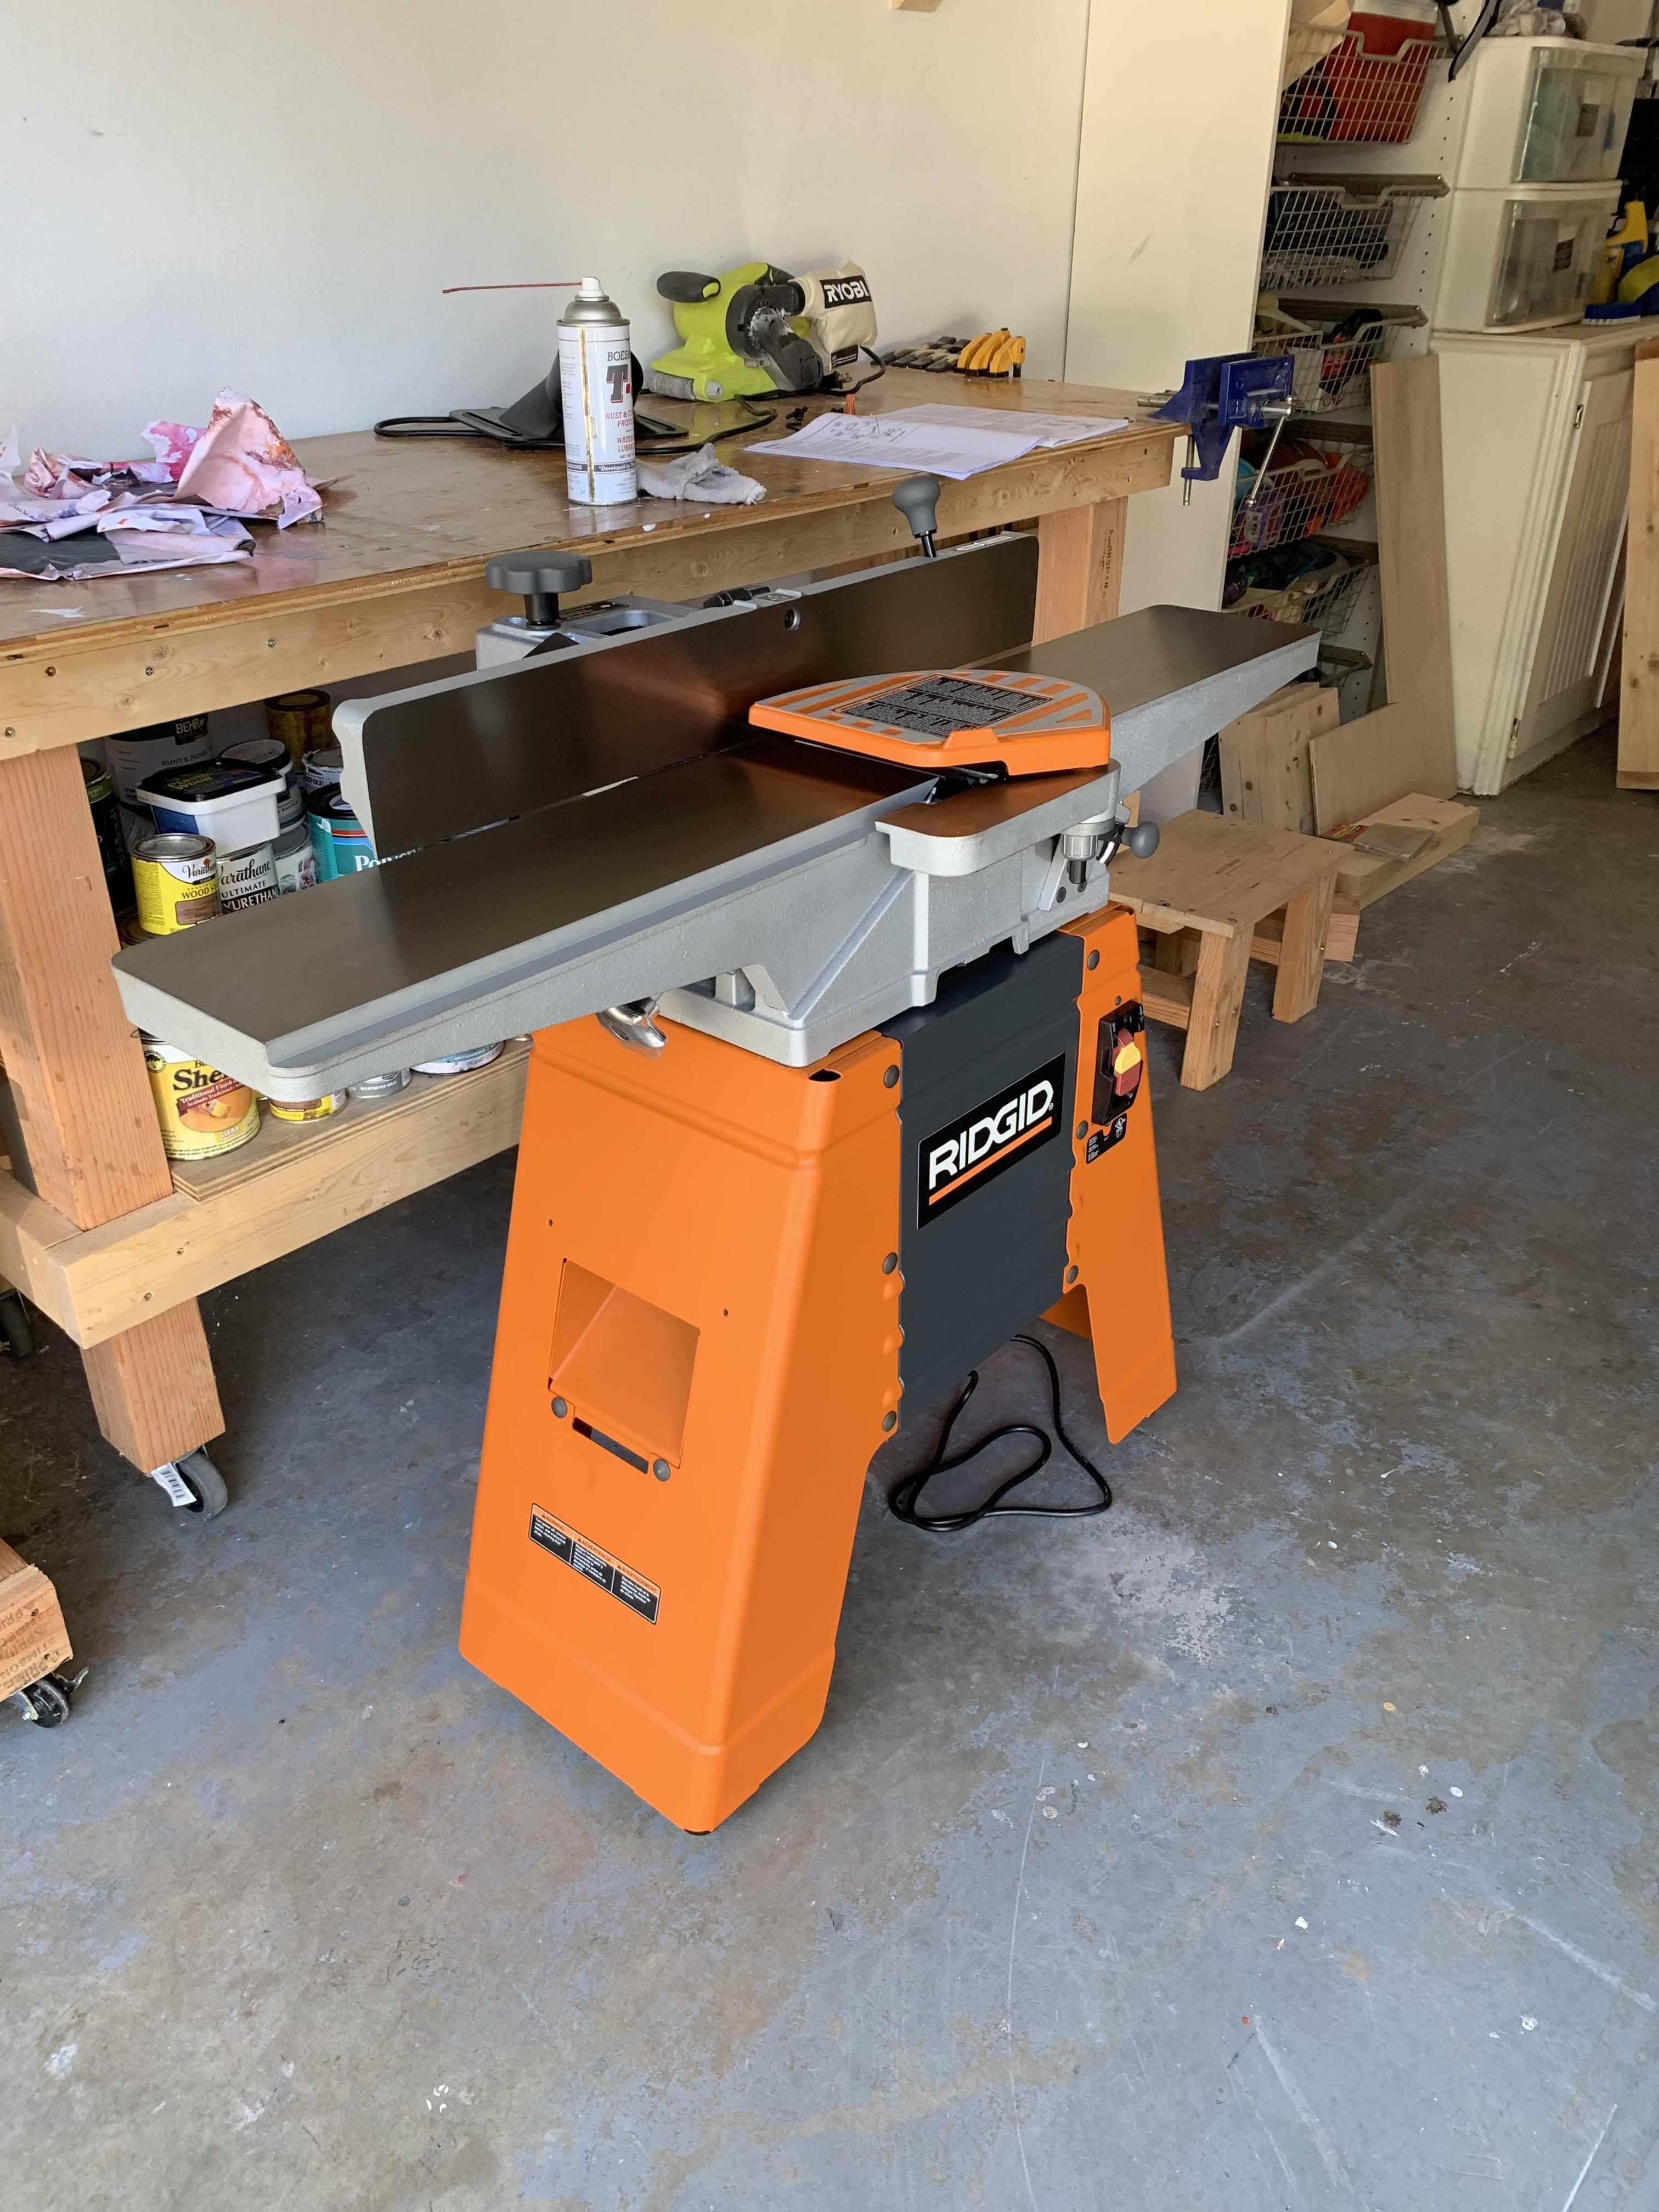 Pin by Tom Hasil on jointer (With images) Woodworking